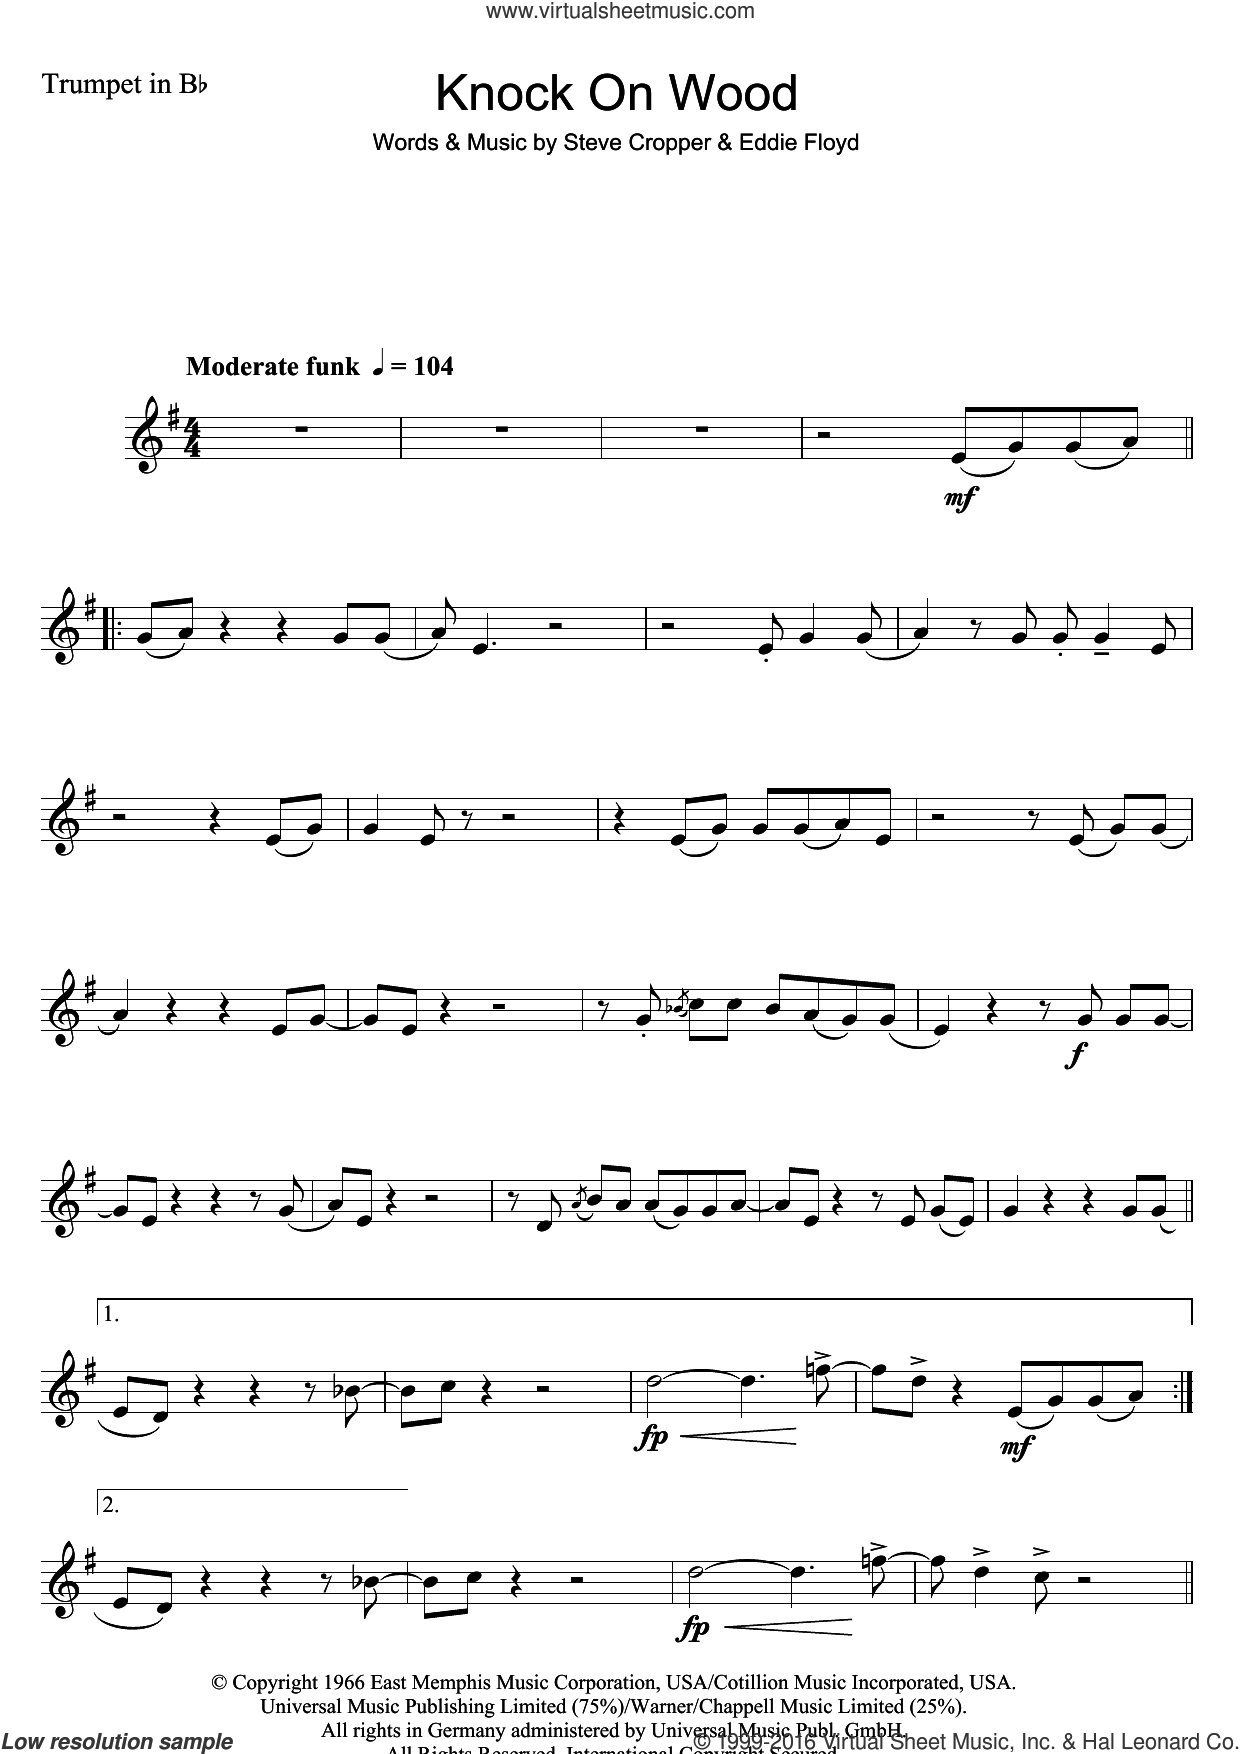 Knock On Wood sheet music for trumpet solo by Steve Cropper and Eddie Floyd. Score Image Preview.